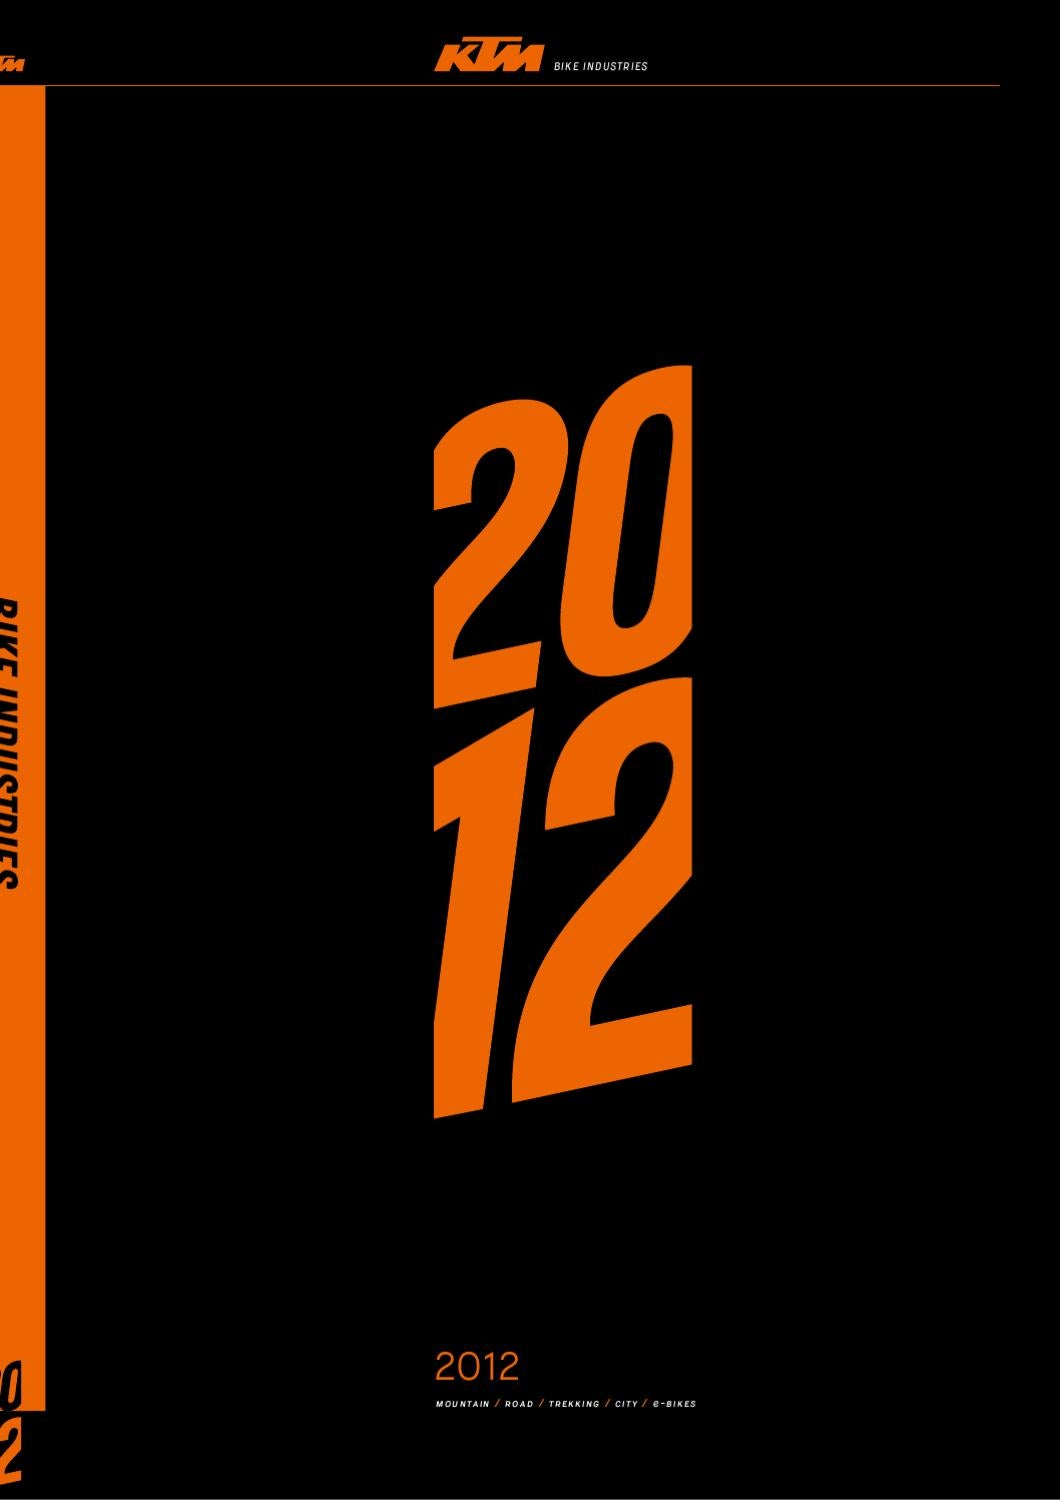 Ktm Catalogue 2012 By Groupe Dejour Issuu